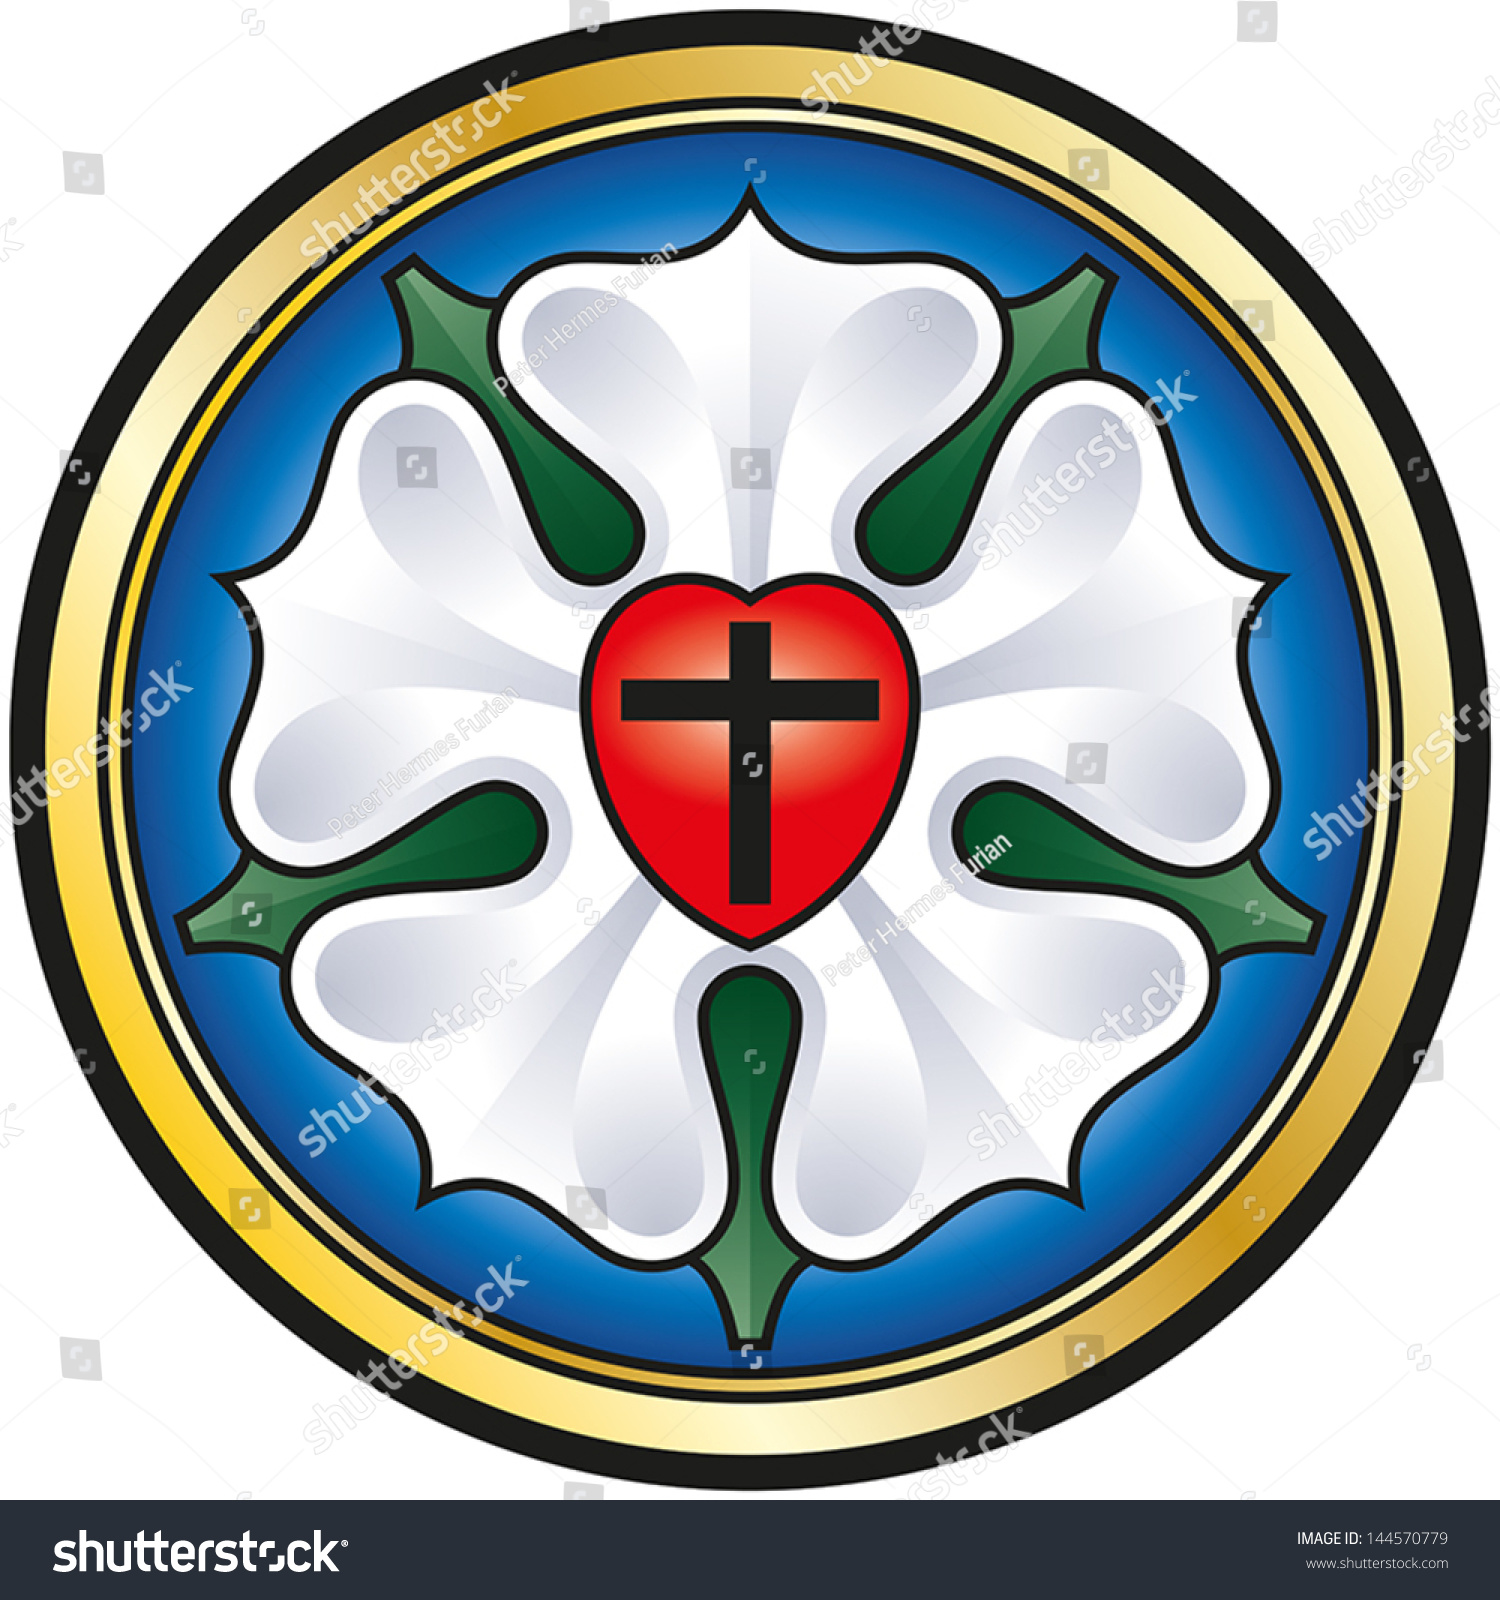 Luther Rose. Colorized Illustration Of The Luther Seal, A Symbol For Lutheranism. A ...